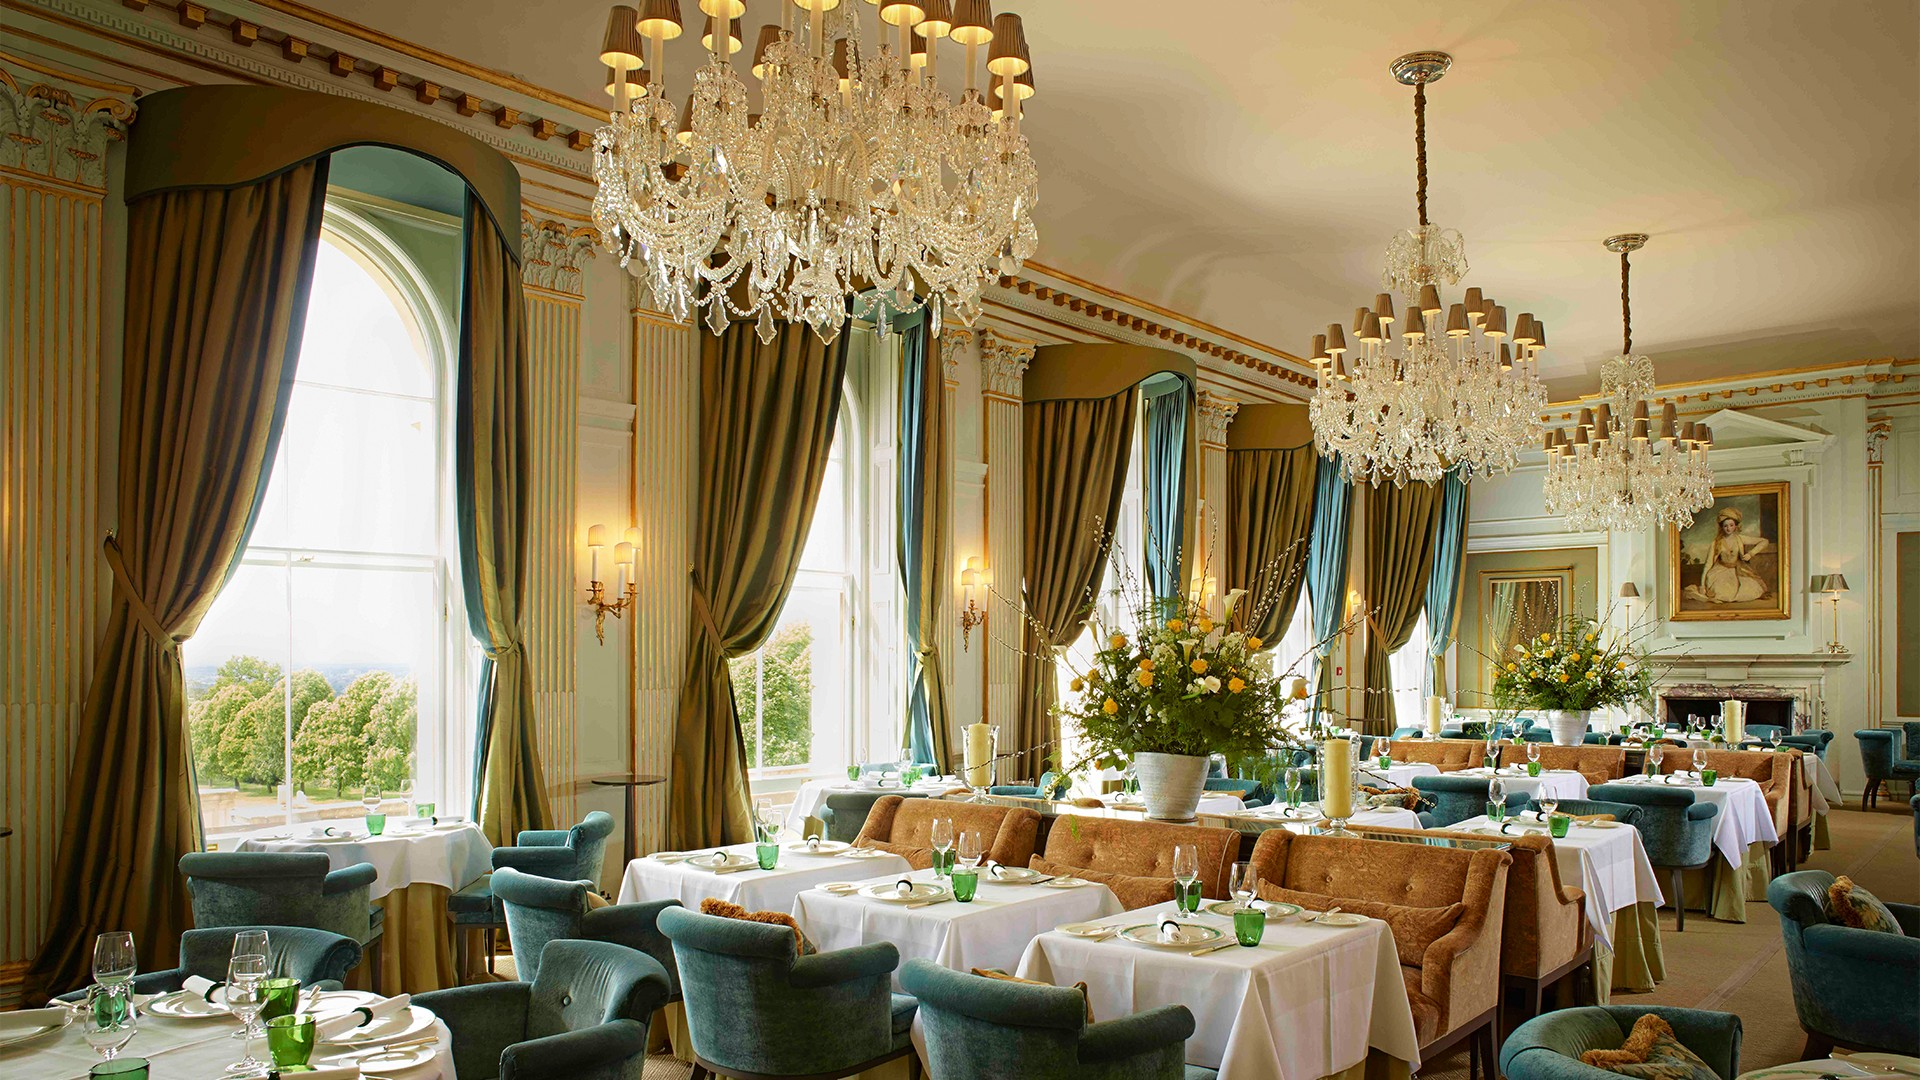 Best Valentine's Day restaurant Cliveden House